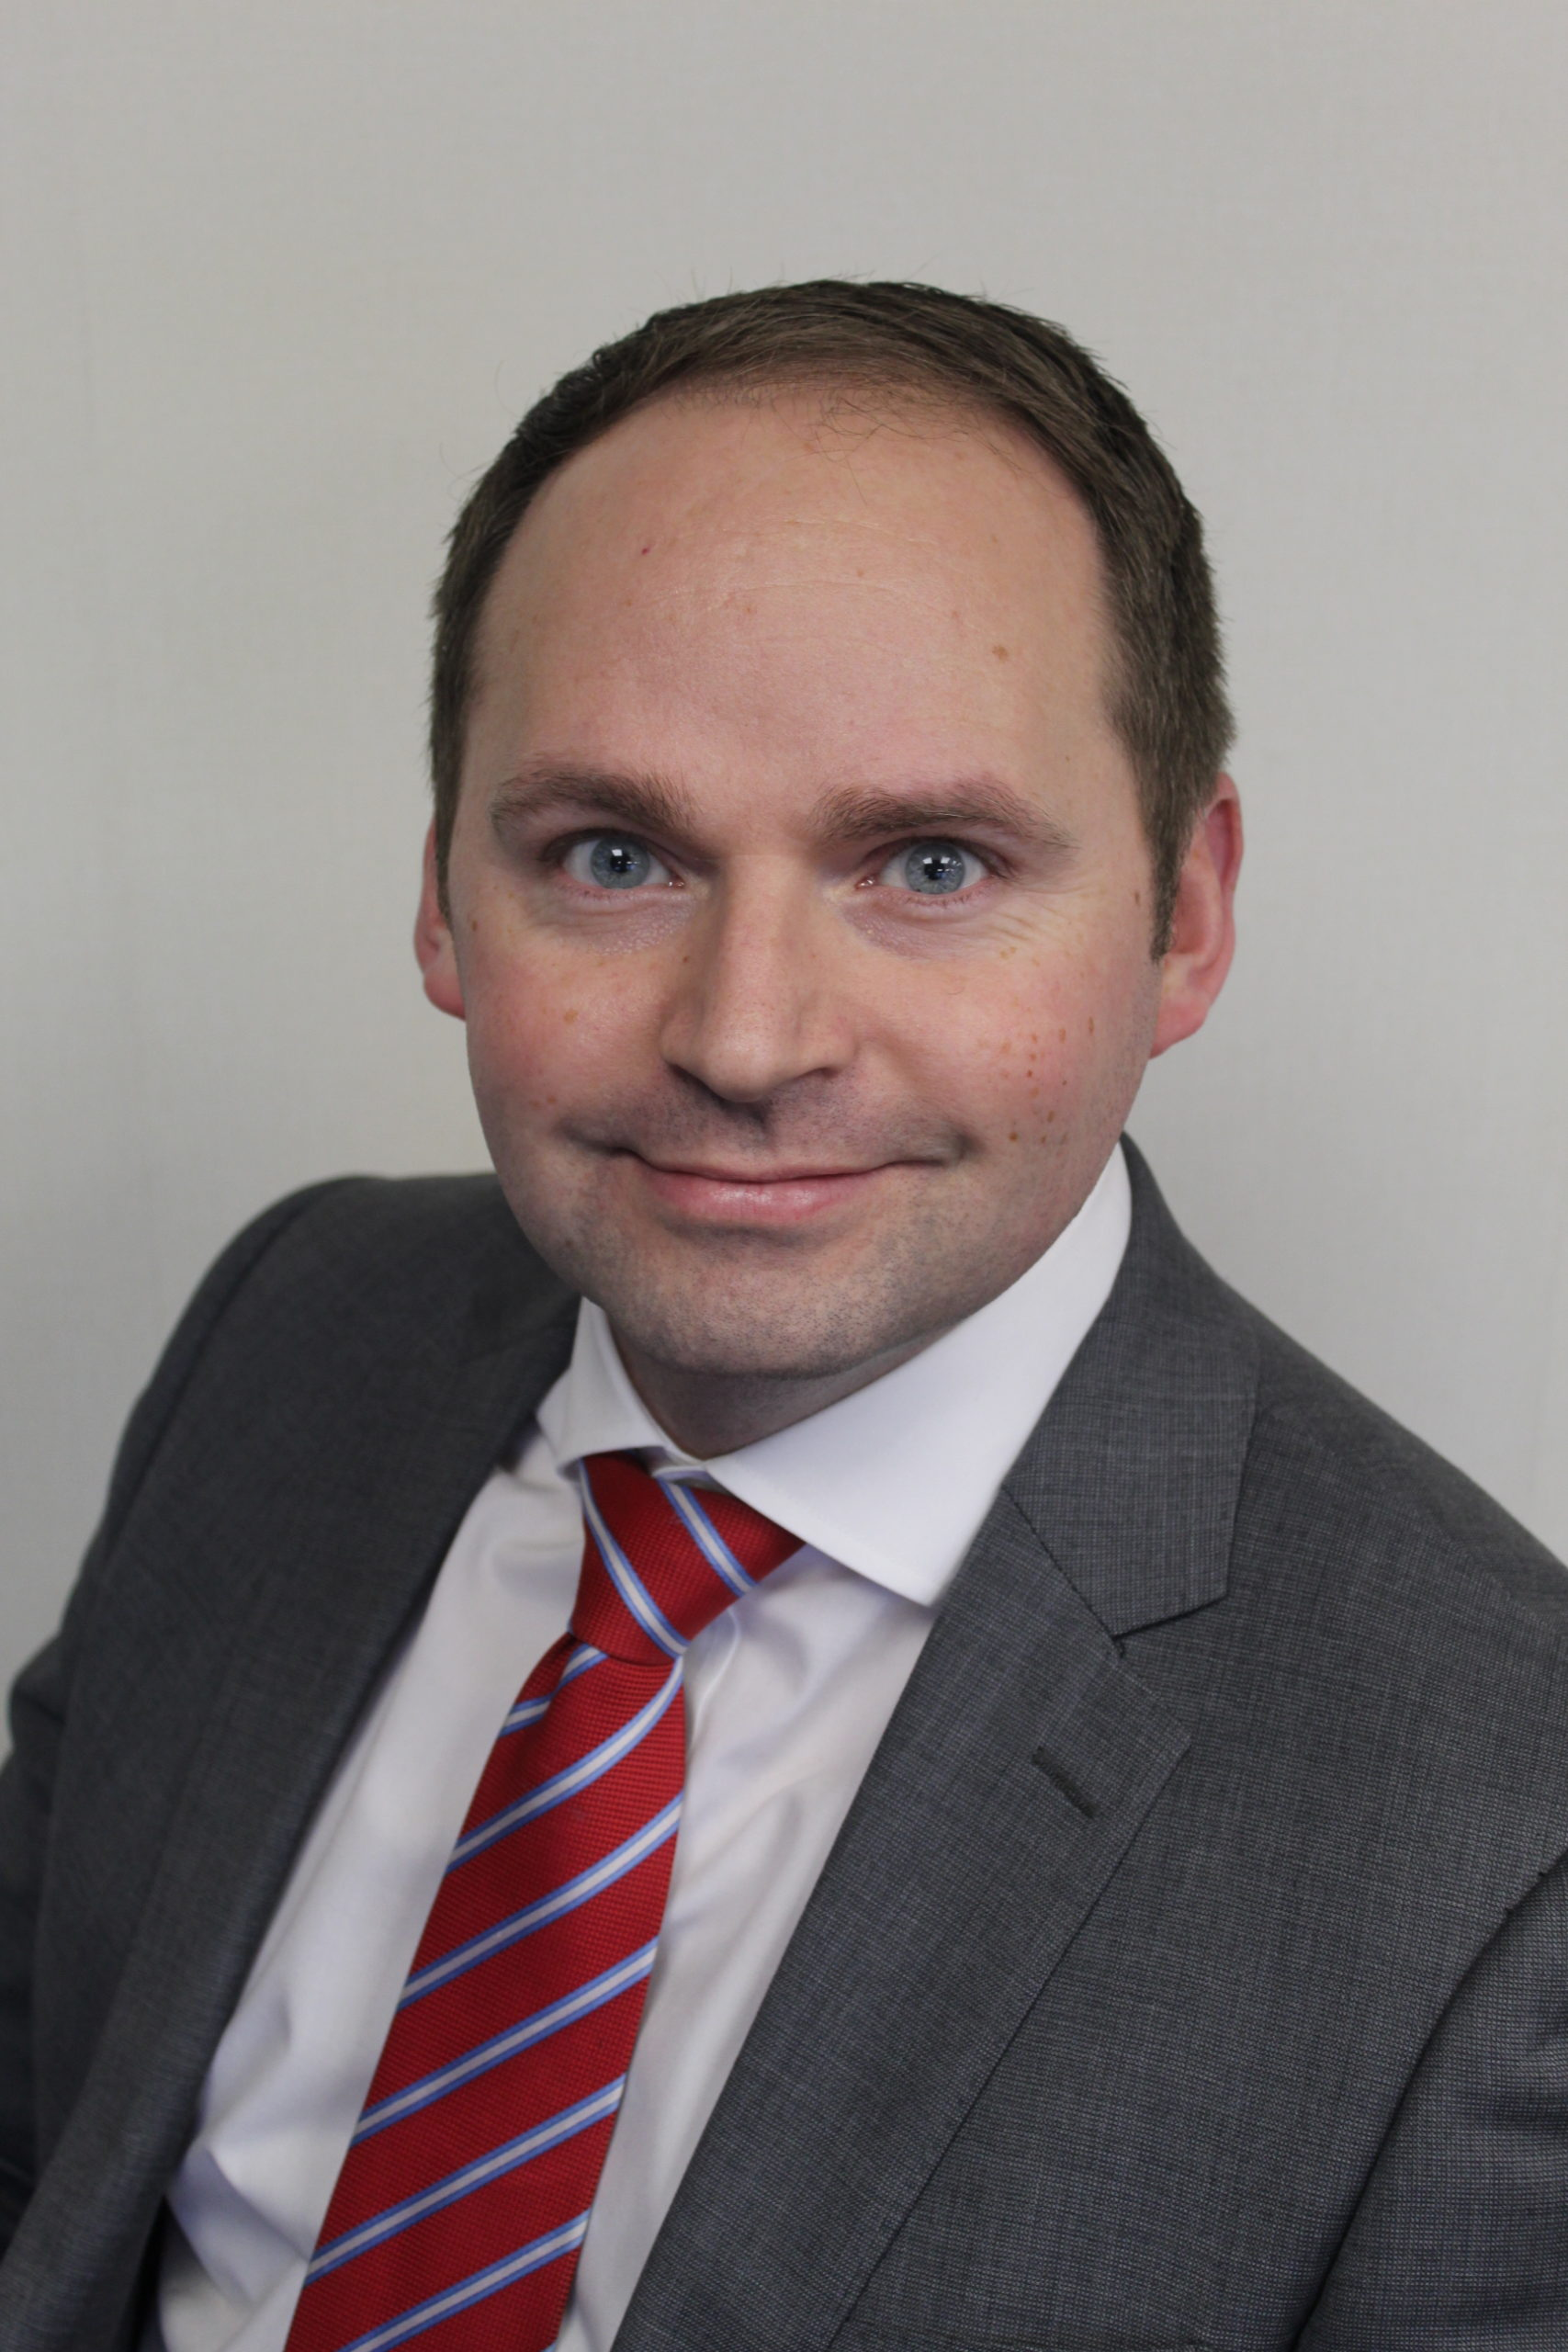 Pete Wilmer, Corporate Finance Partner